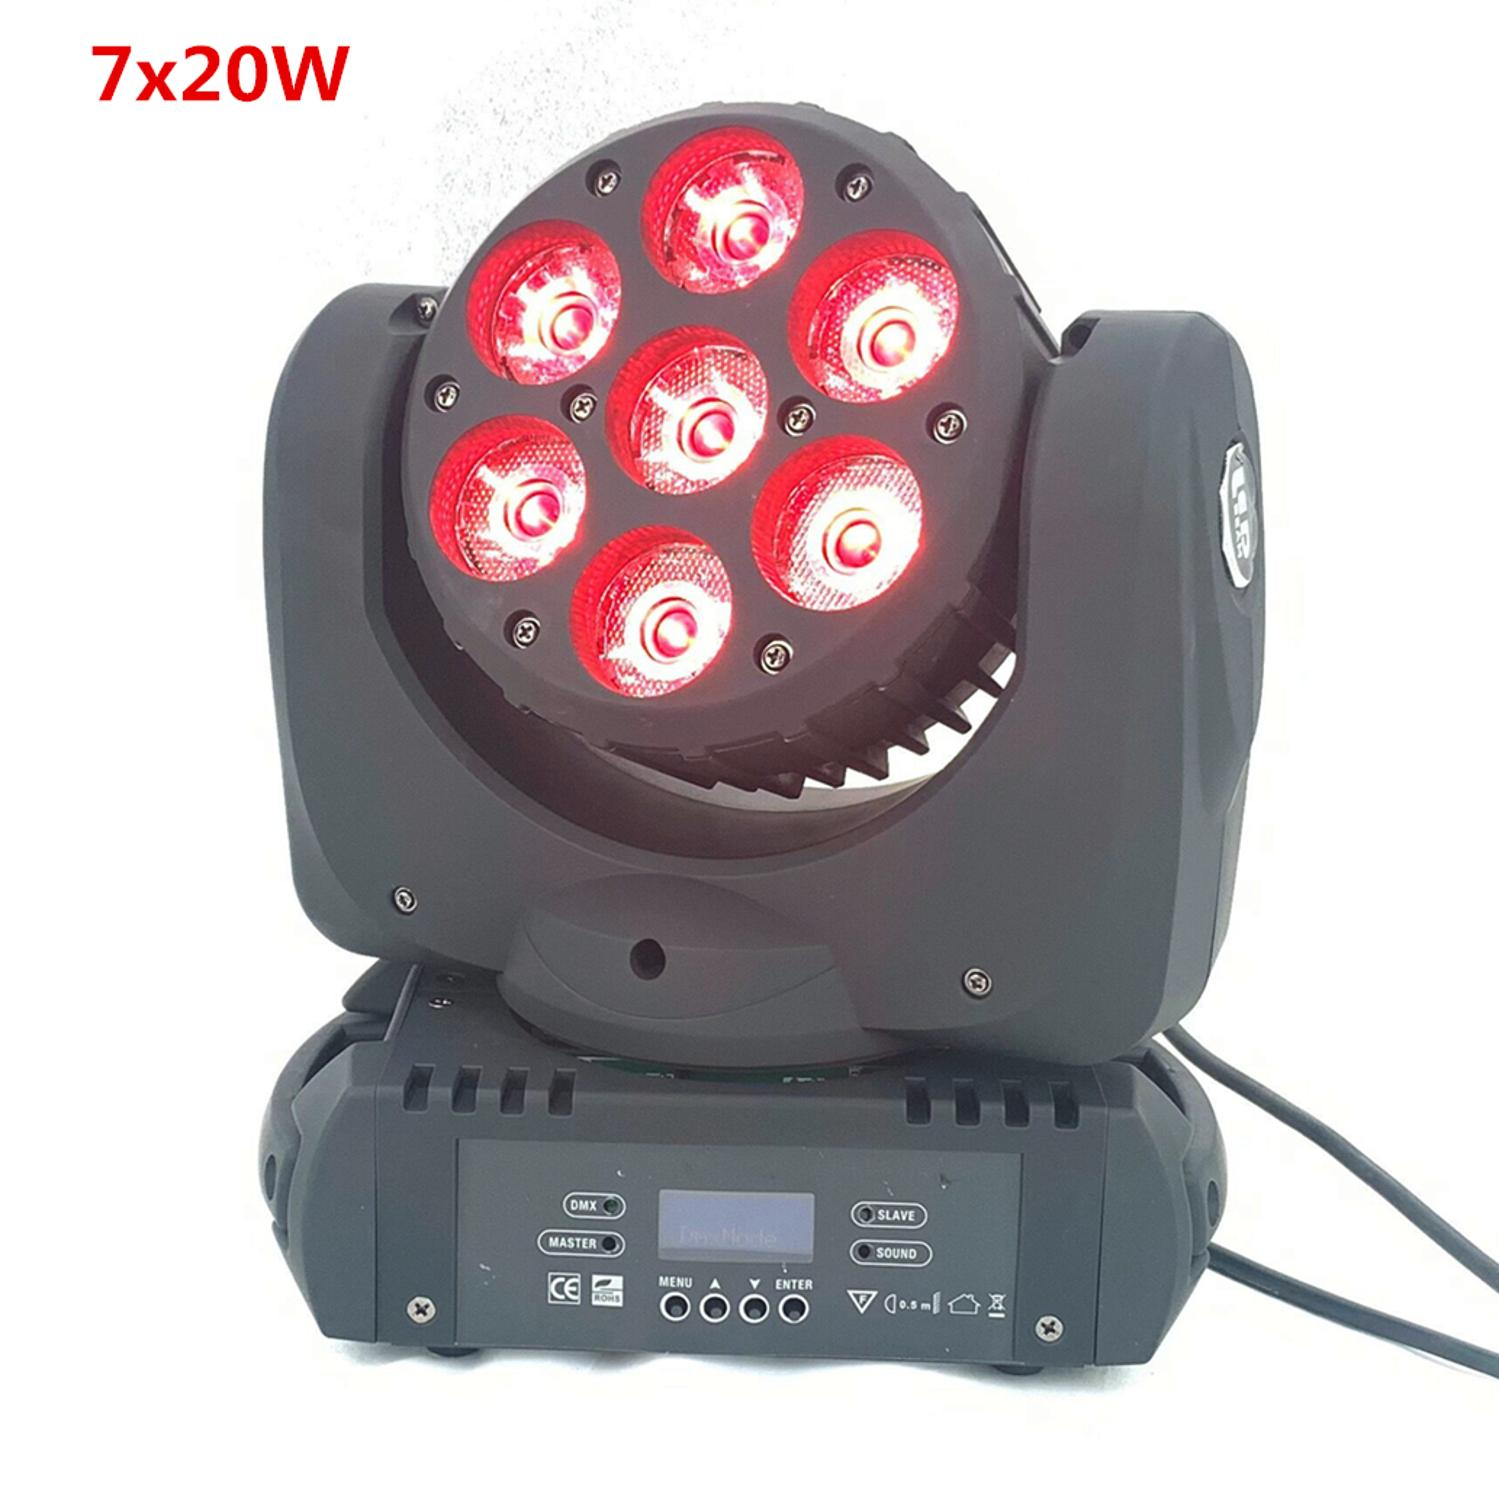 LED Beam Moving Head Light 7x20W Rgbw 4in1 9/16 Dmx Channels For Dj Disco Lights Wash Stage Lighting Effects